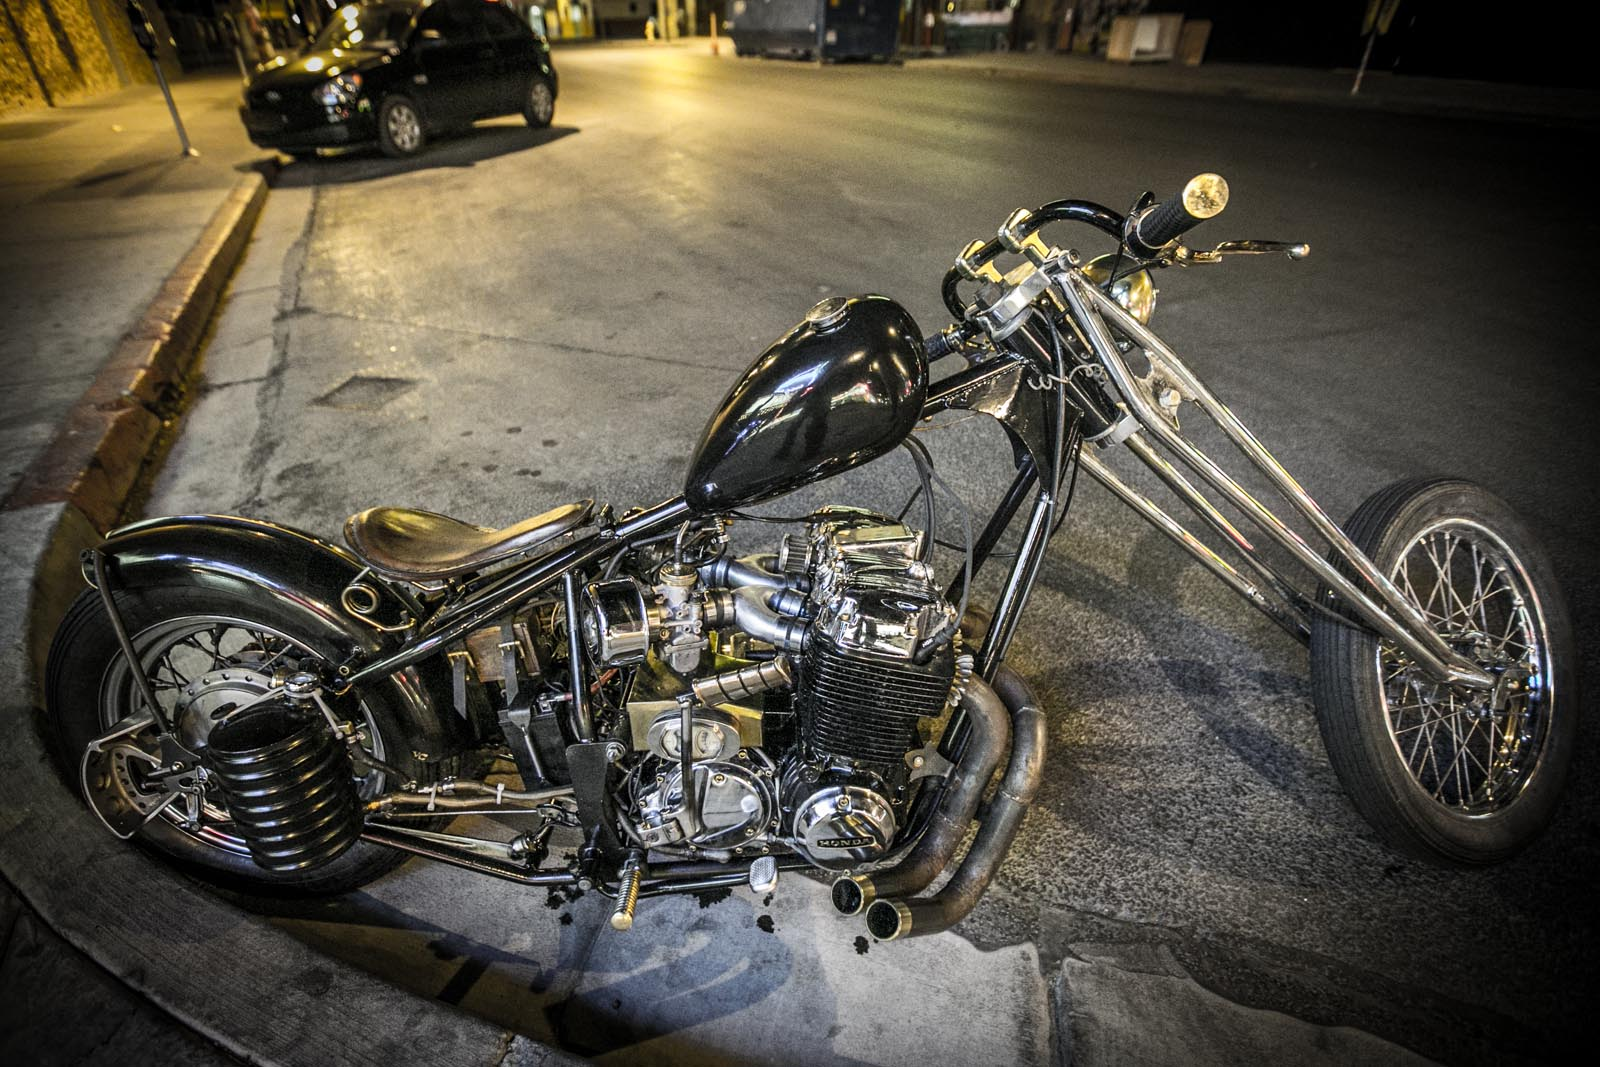 Brandon's homemade Honda CB750 chopper. Click for more details.